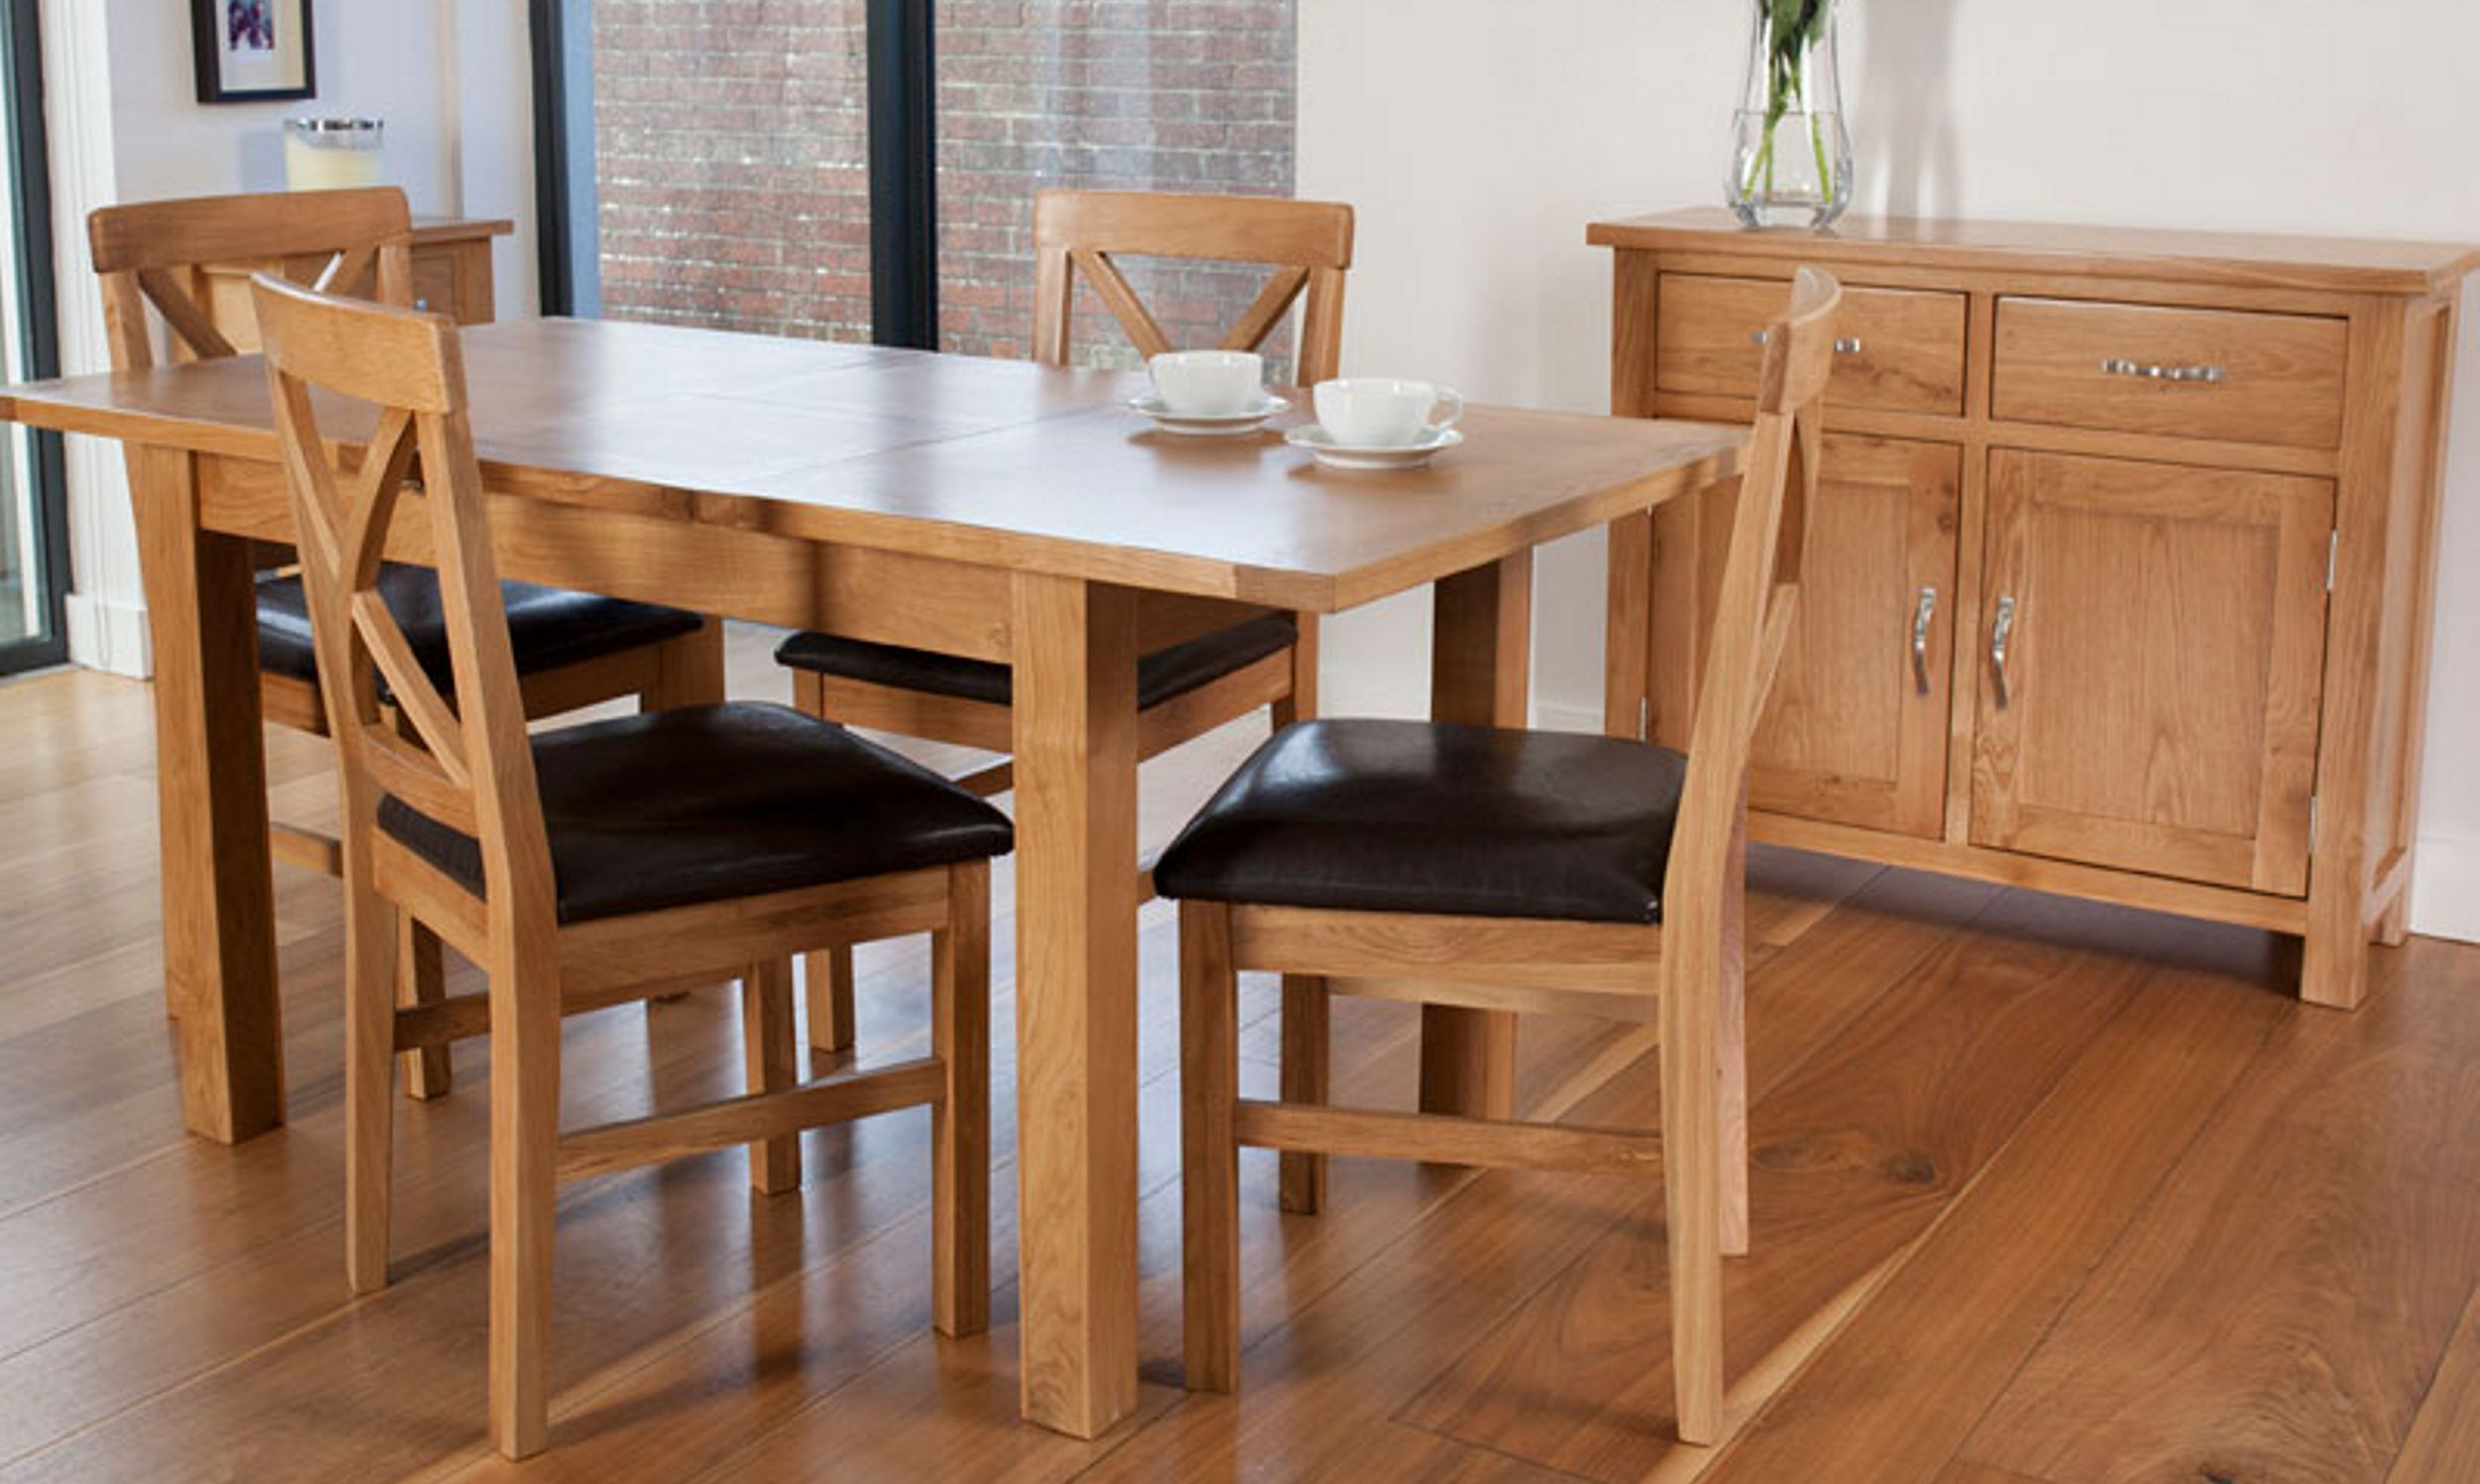 Arun Furnishers Ltd based in Littlehampton, West Sussex supply quality furniture for the home - dining romm and cabinets